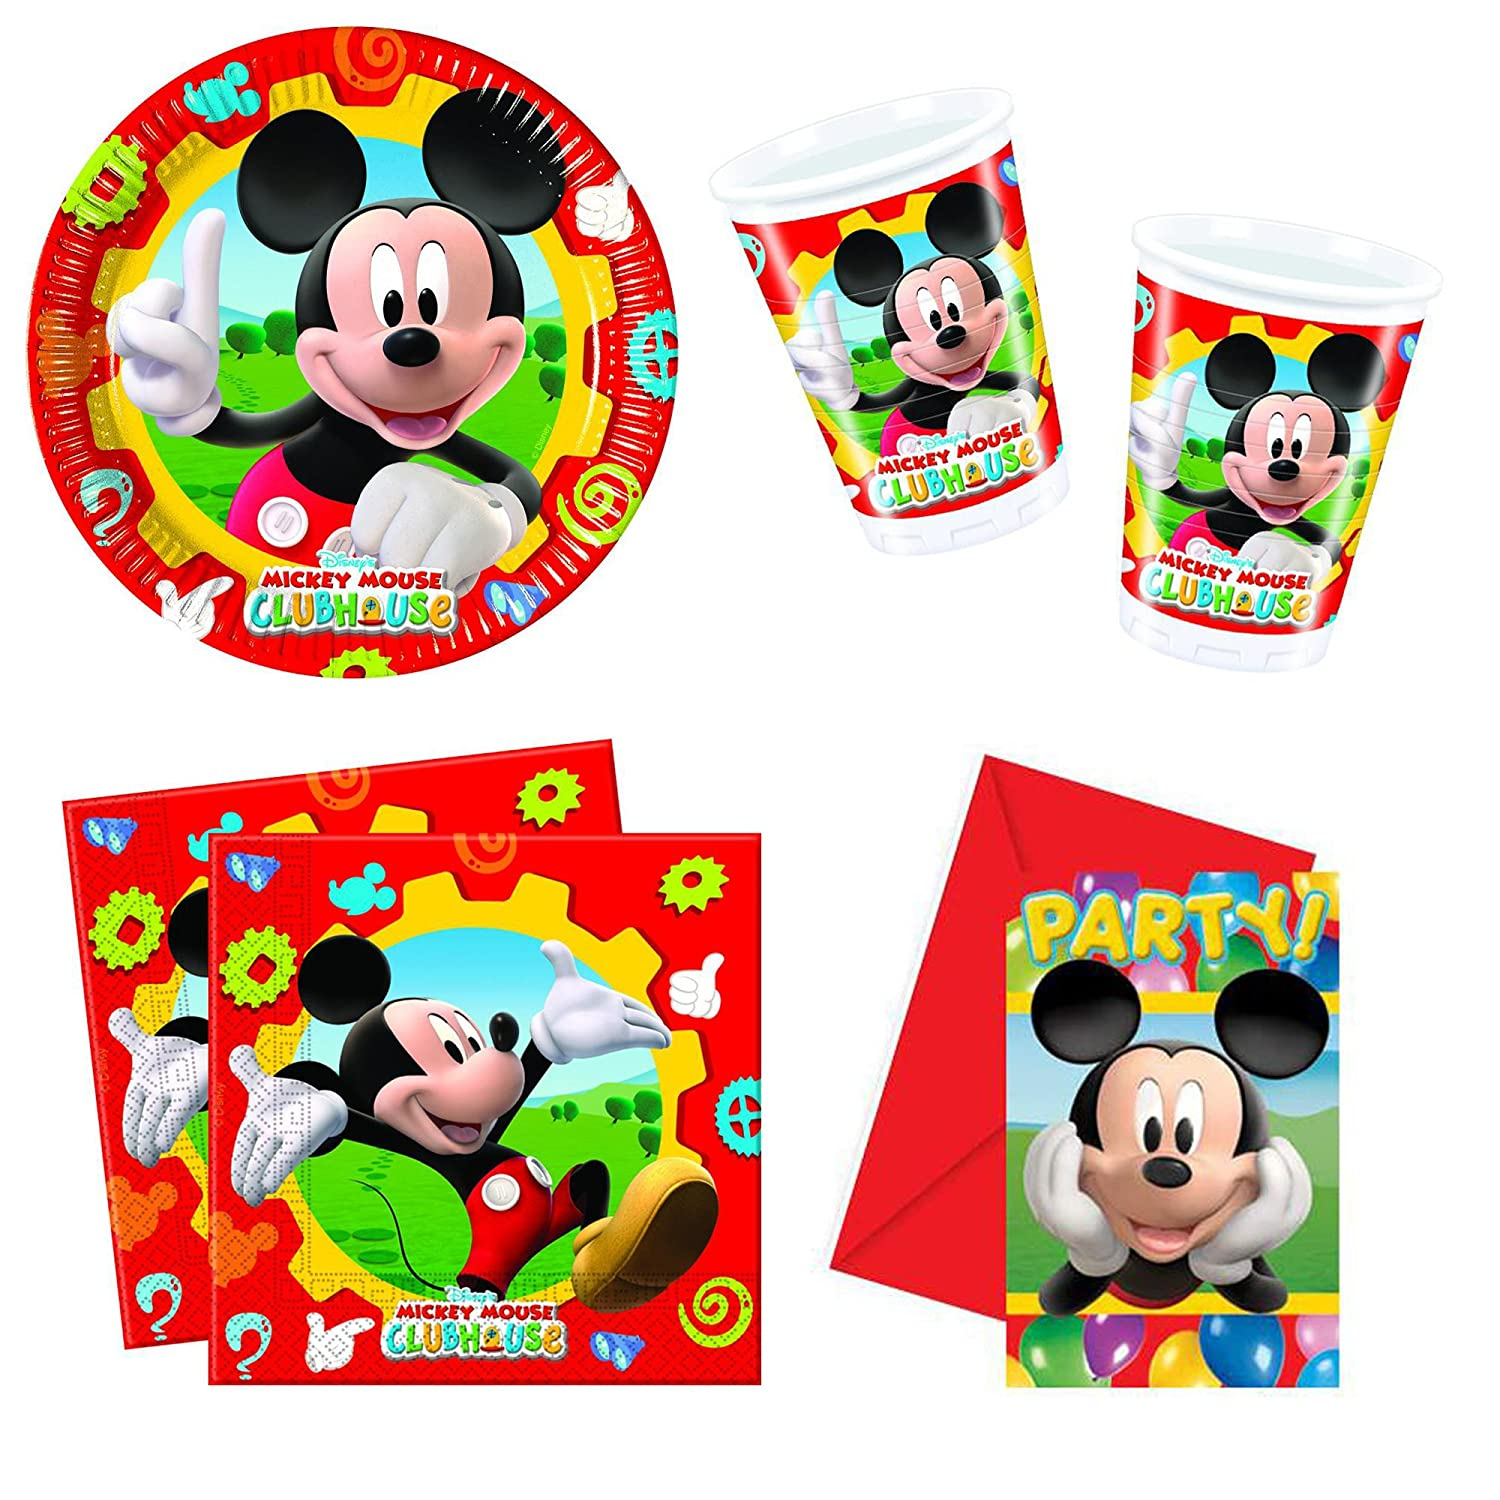 Gameworld 46-Teiliges Mickey Maus Wunderhaus Variante 1 Party-Set ...